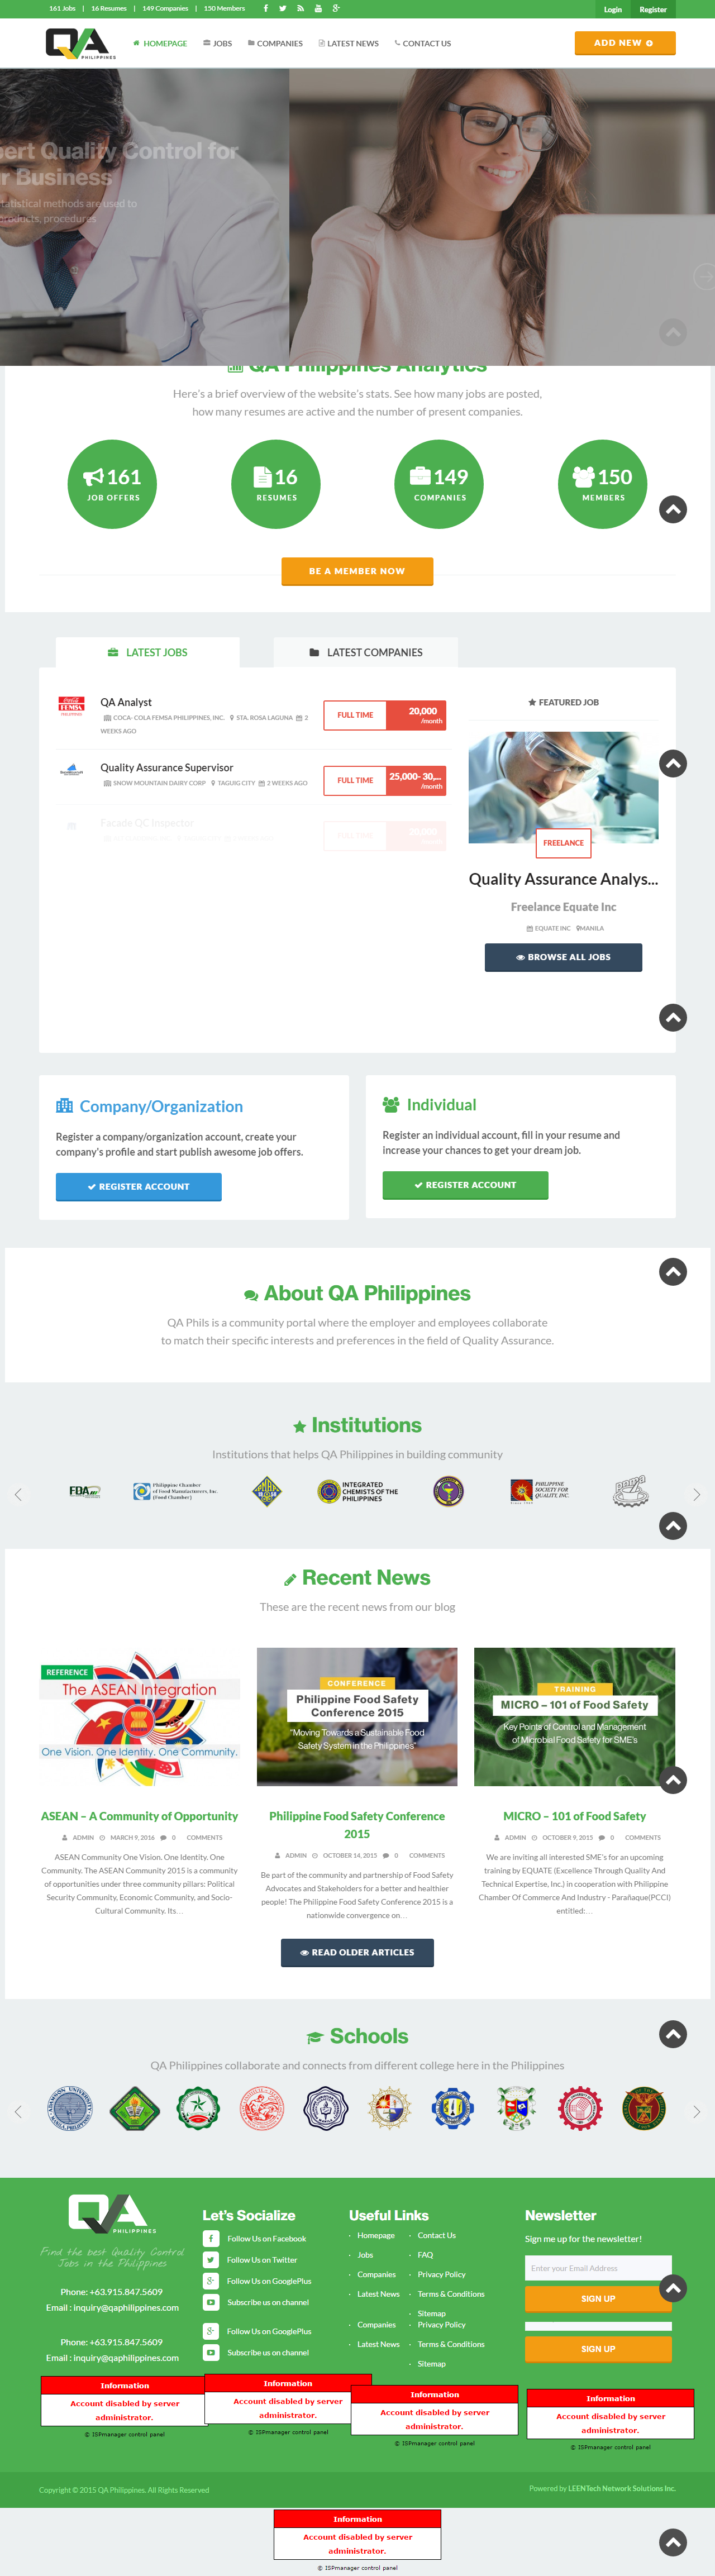 QA Philippines - Educational Portal for Philippines